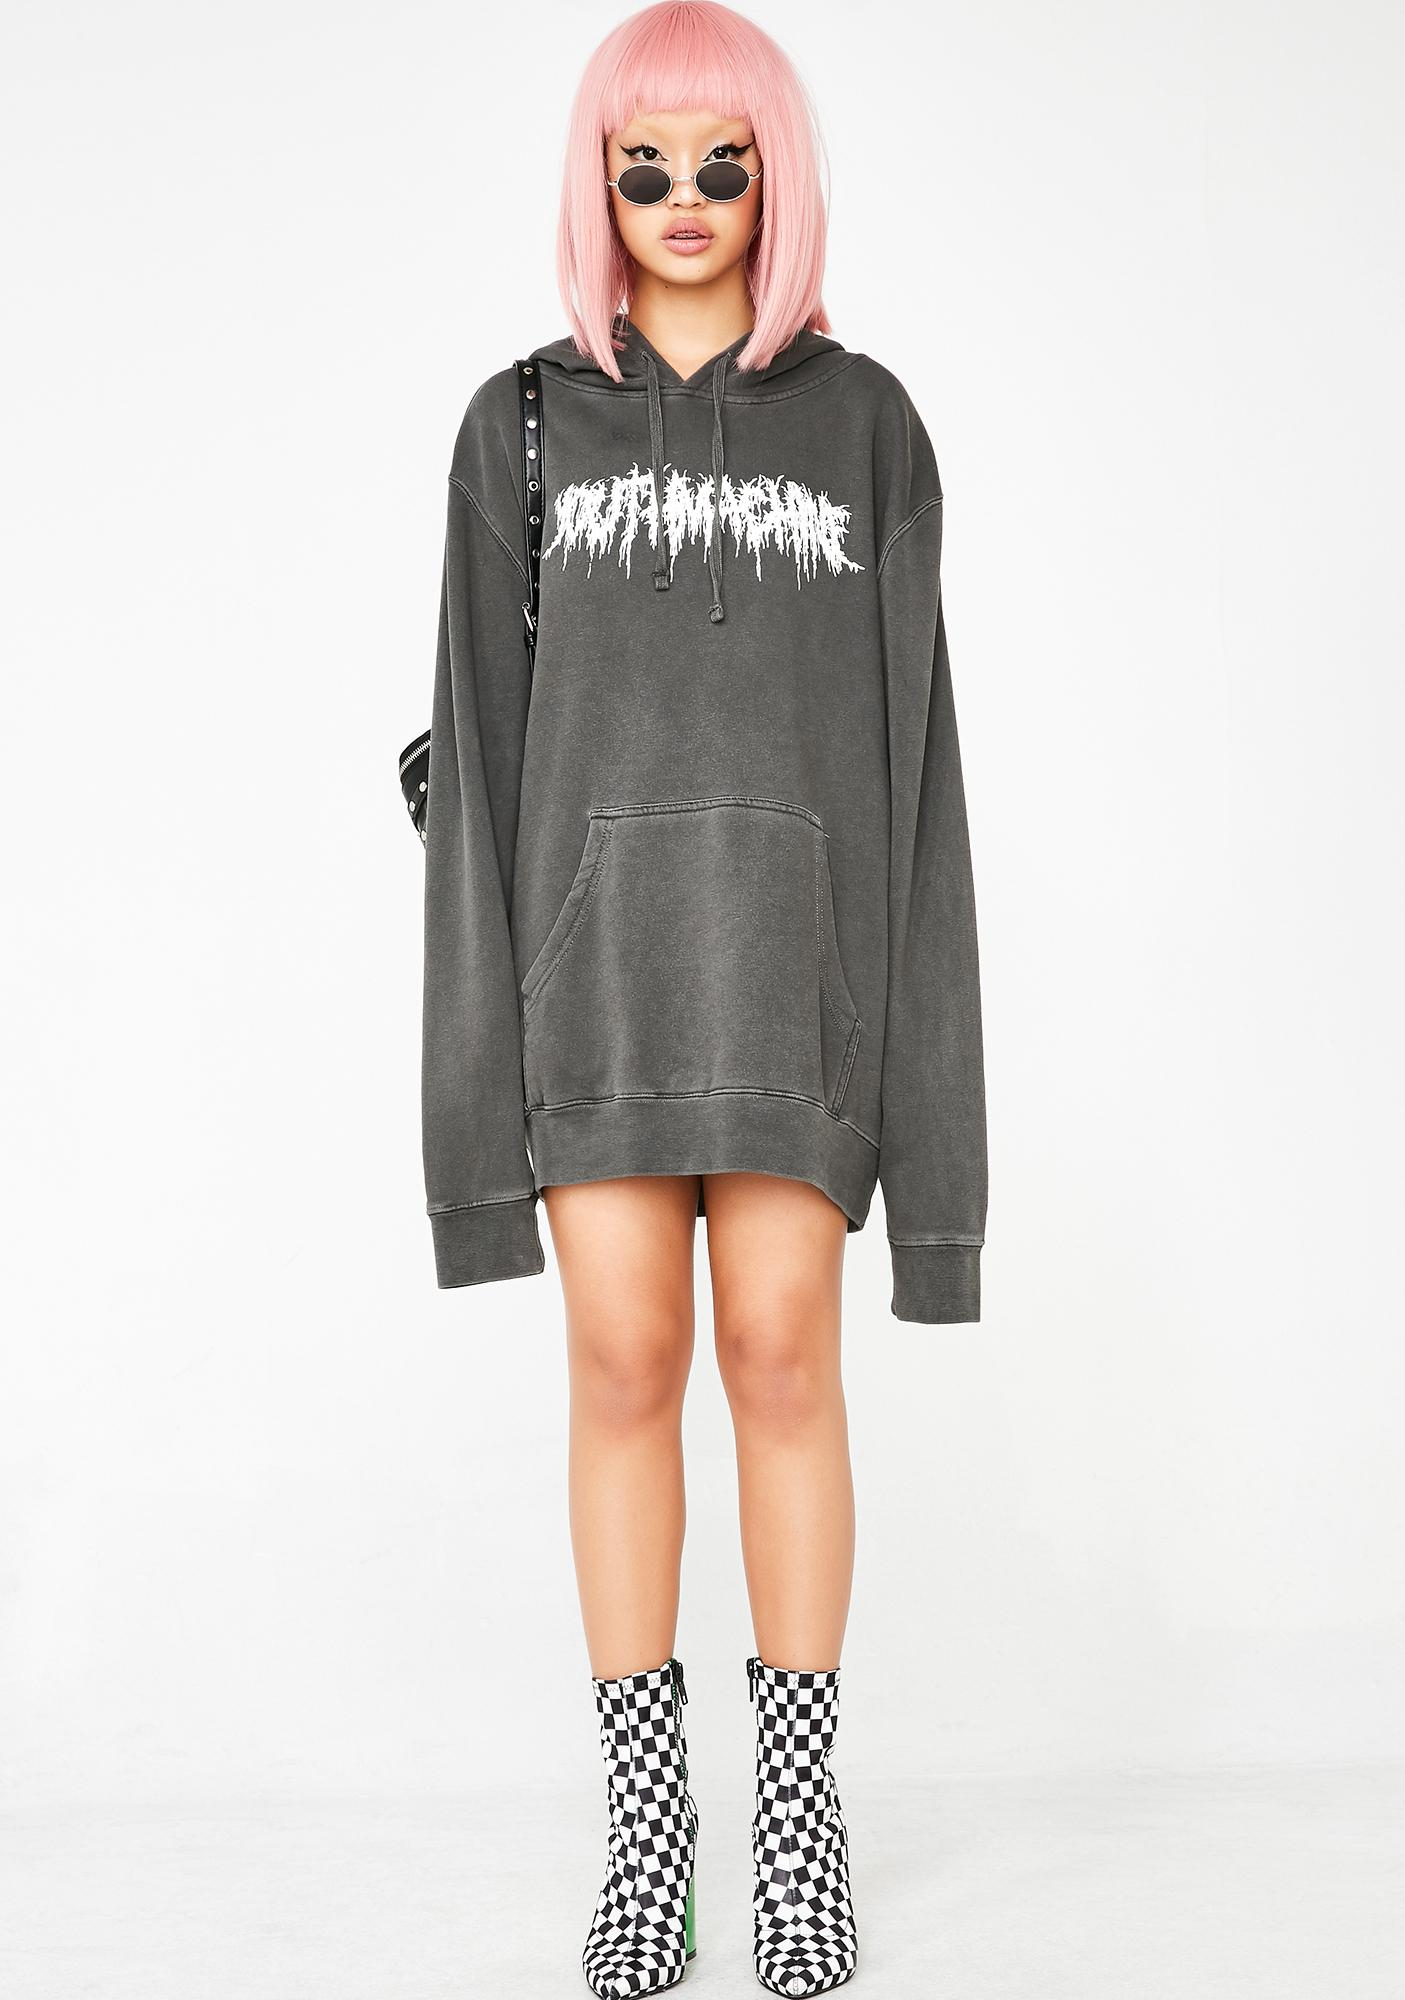 Youth Machine Massacre Hoodie